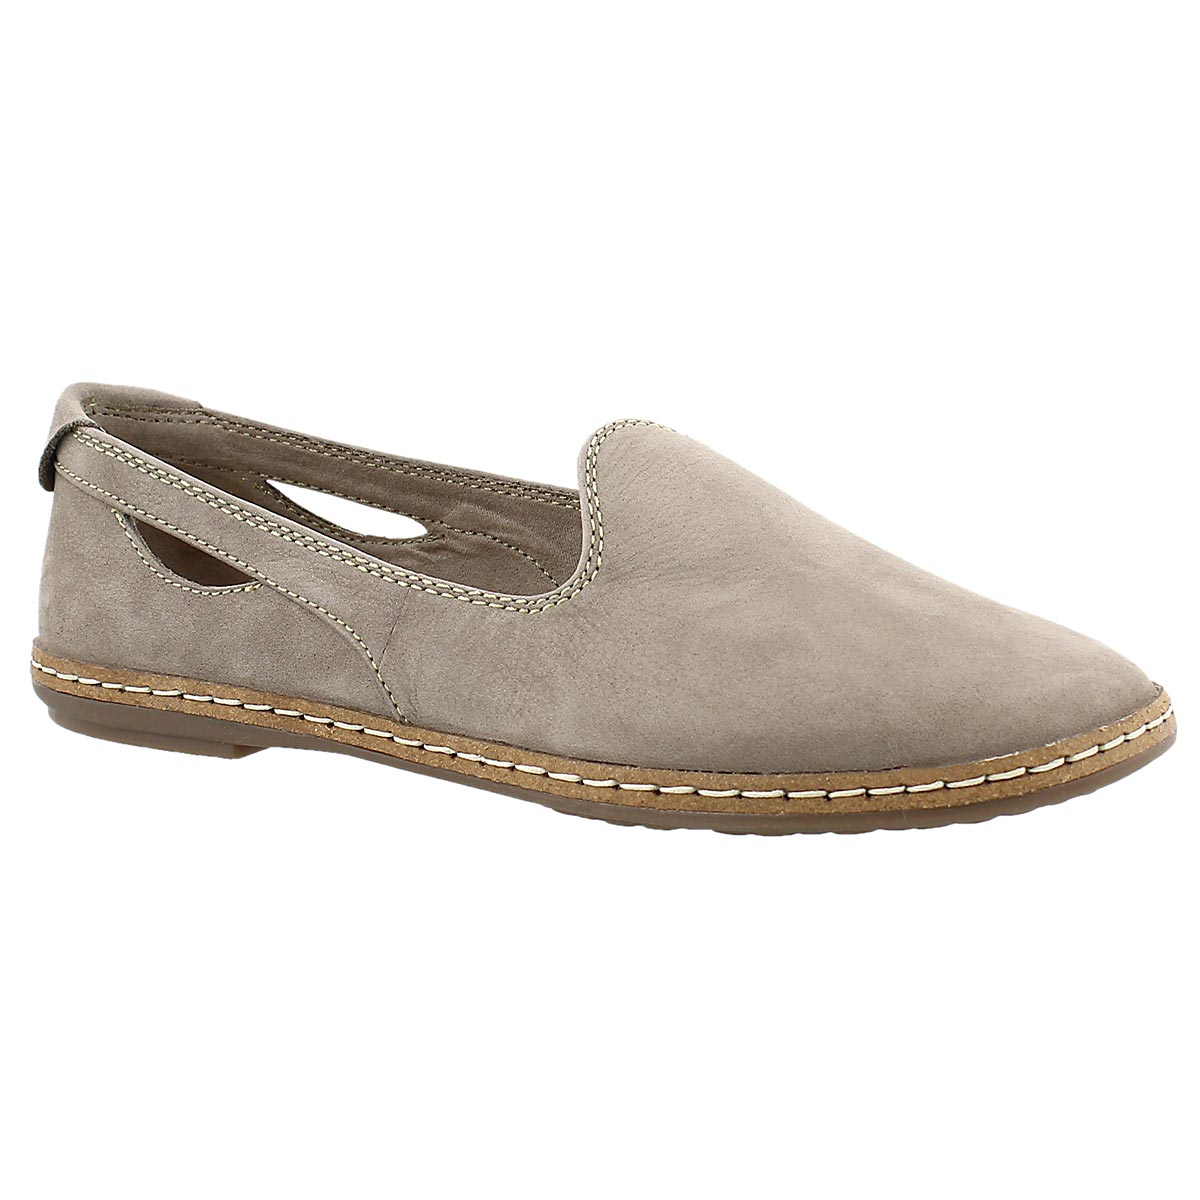 Women's SEBEKA PIPER taupe casual flats